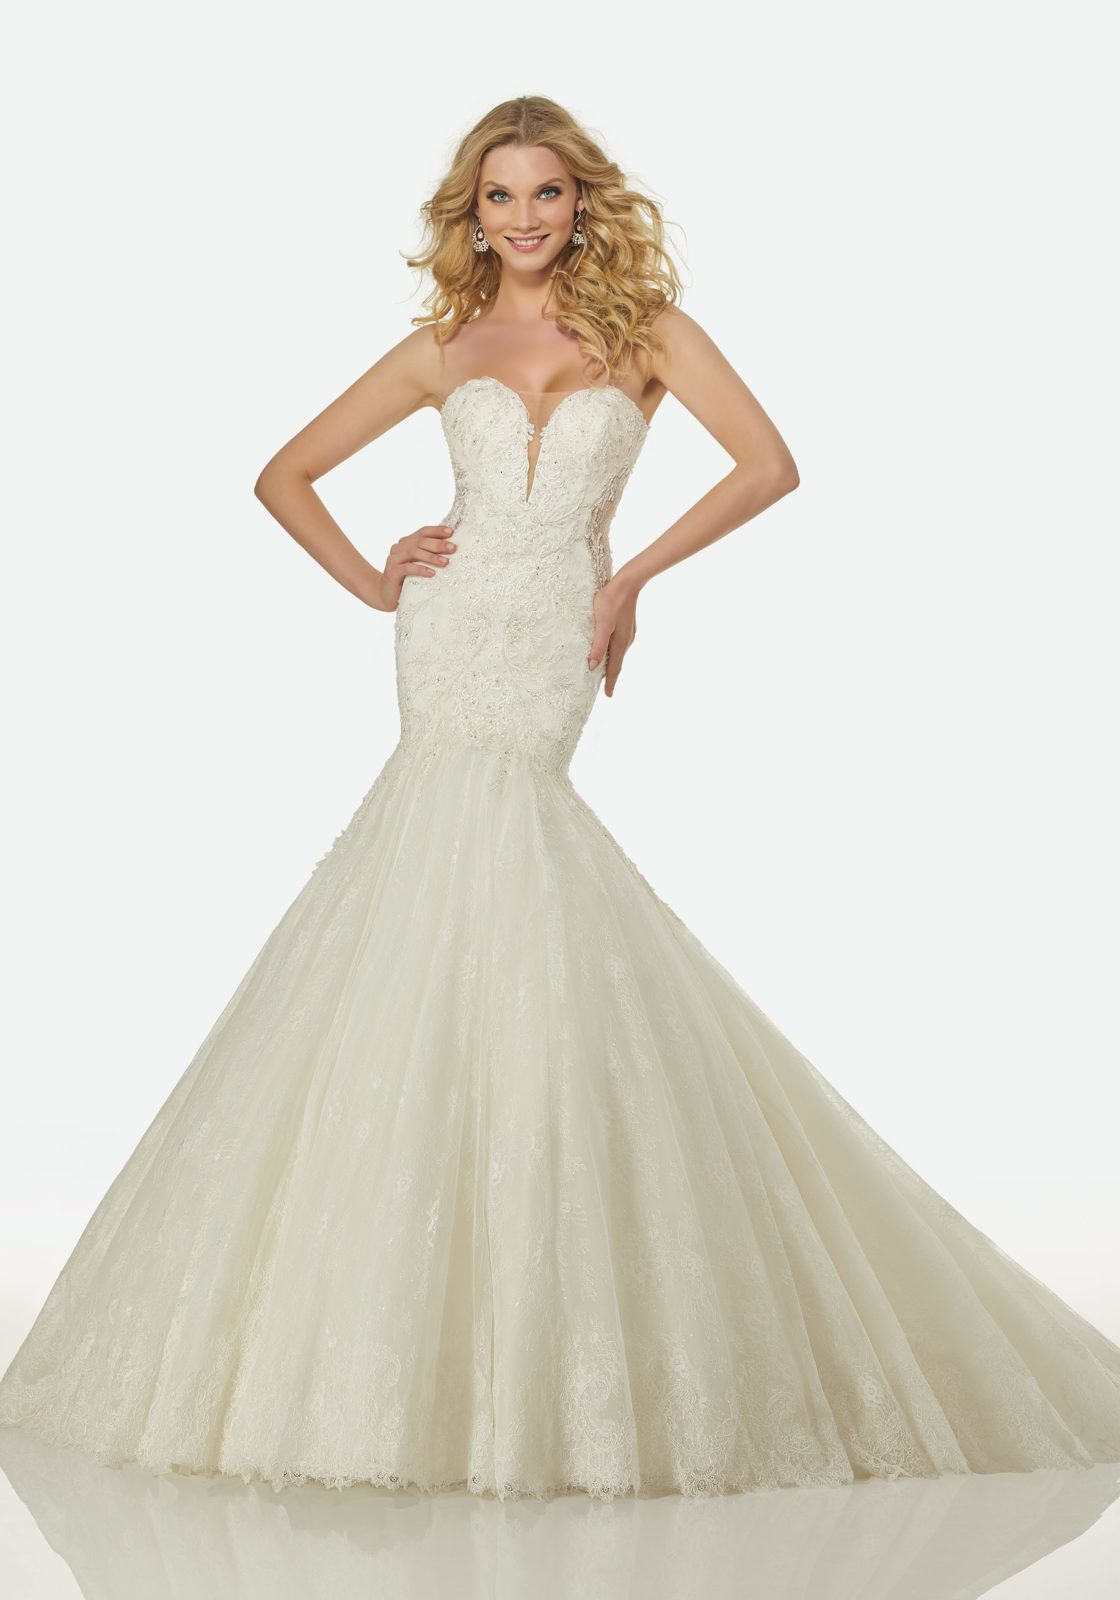 Aria Wedding Dress | Randy Fenoli Bridal | Weddings | Pinterest ...